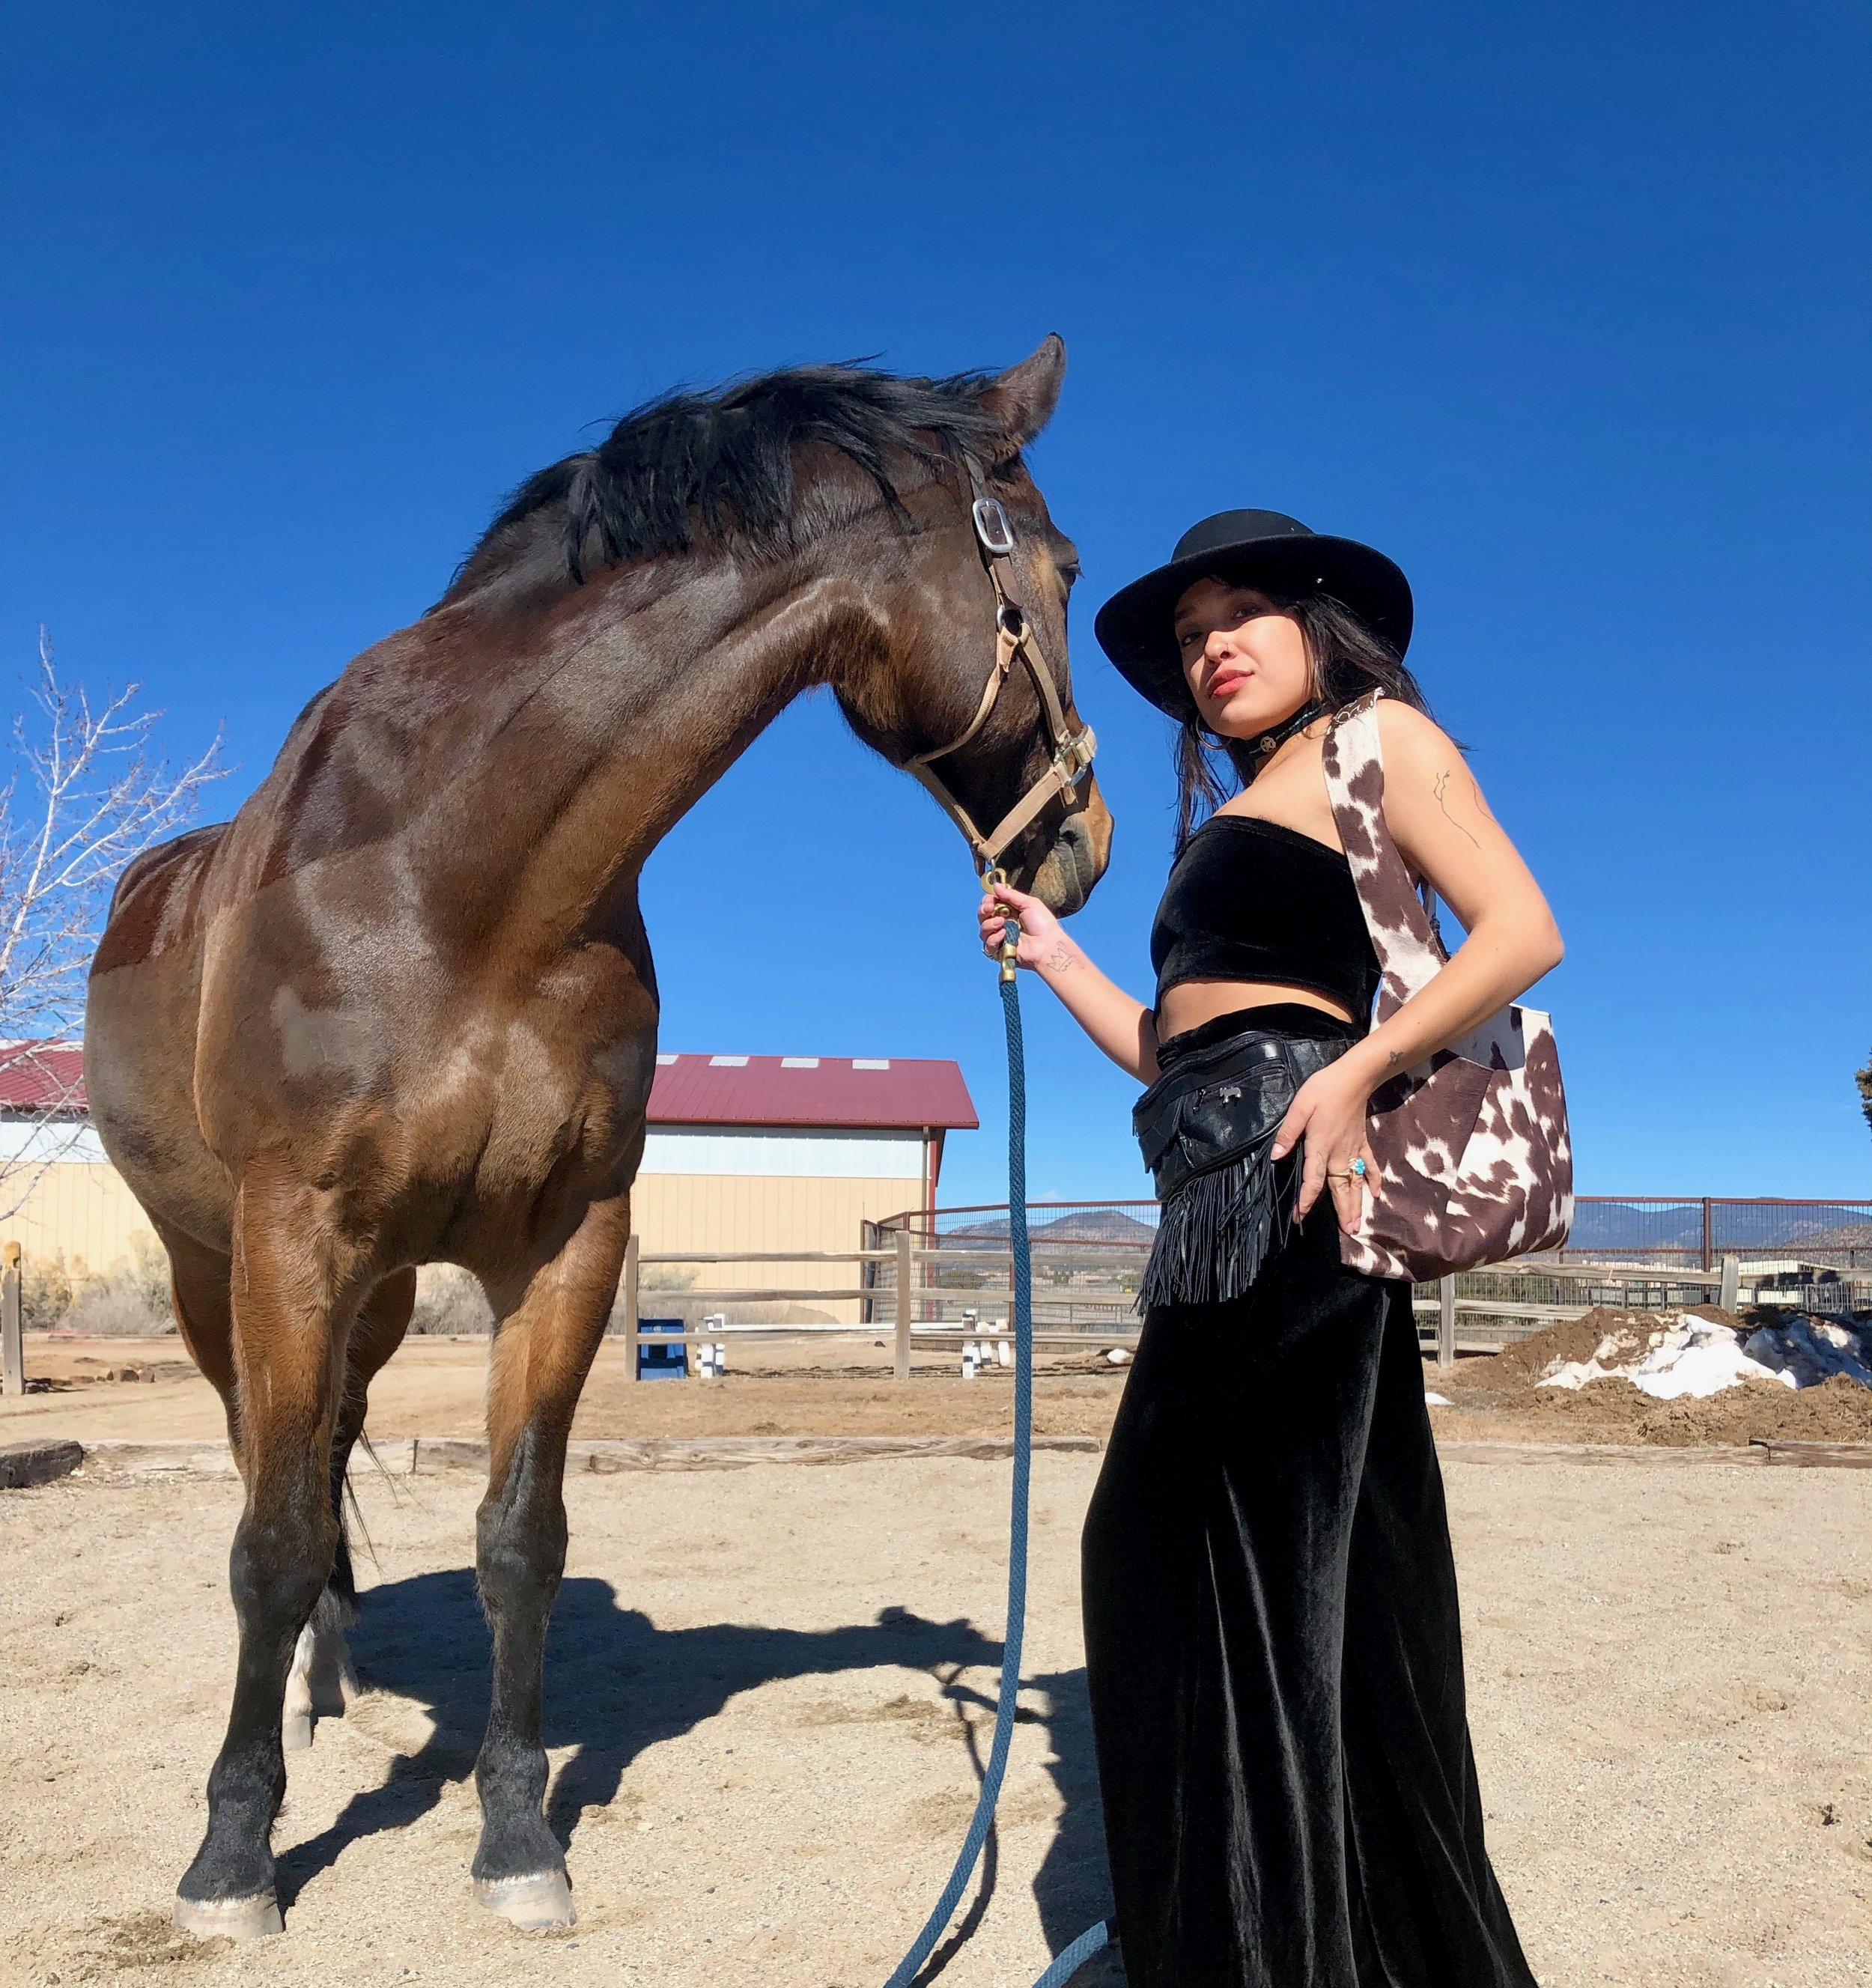 "'Belle Starr Side Saddle Set"" silk velvet two piece set and cow print boho bag designed and sewn by me. Up-cycled 'Fringed Holster' fanny pack."